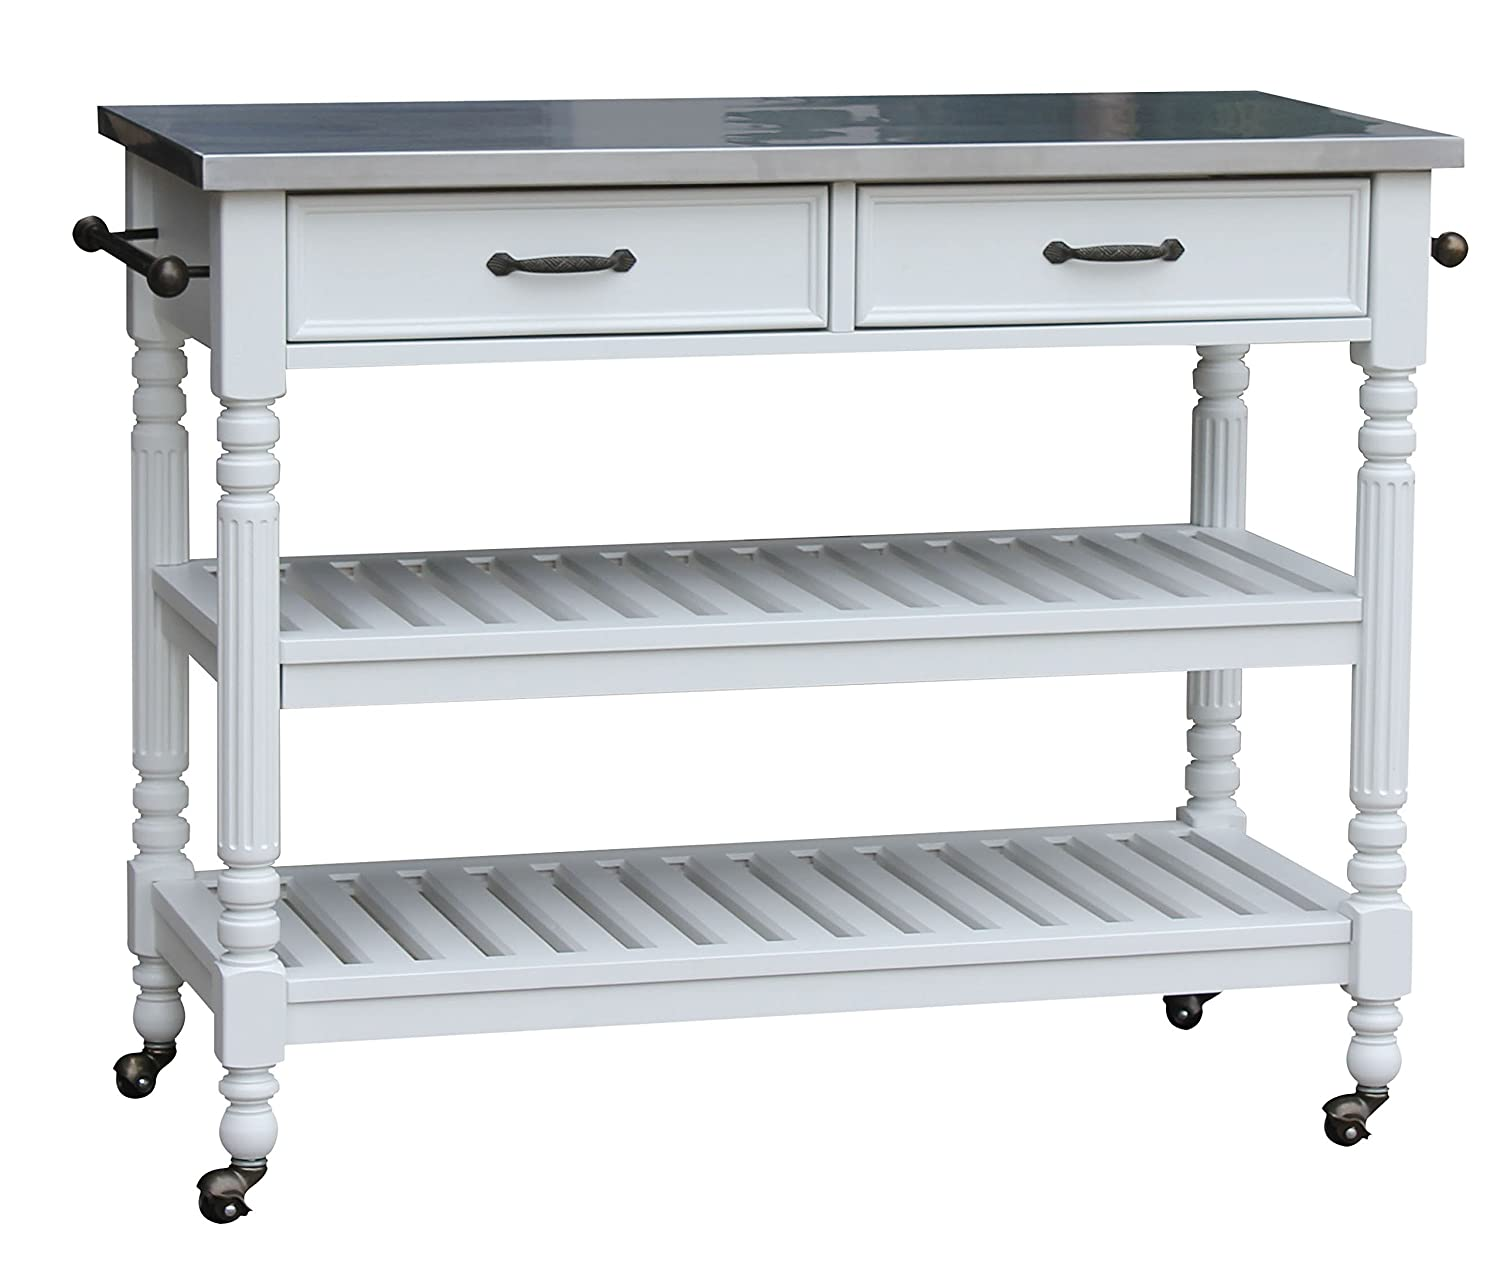 Home Styles Savanna Kitchen Cart, White Finish